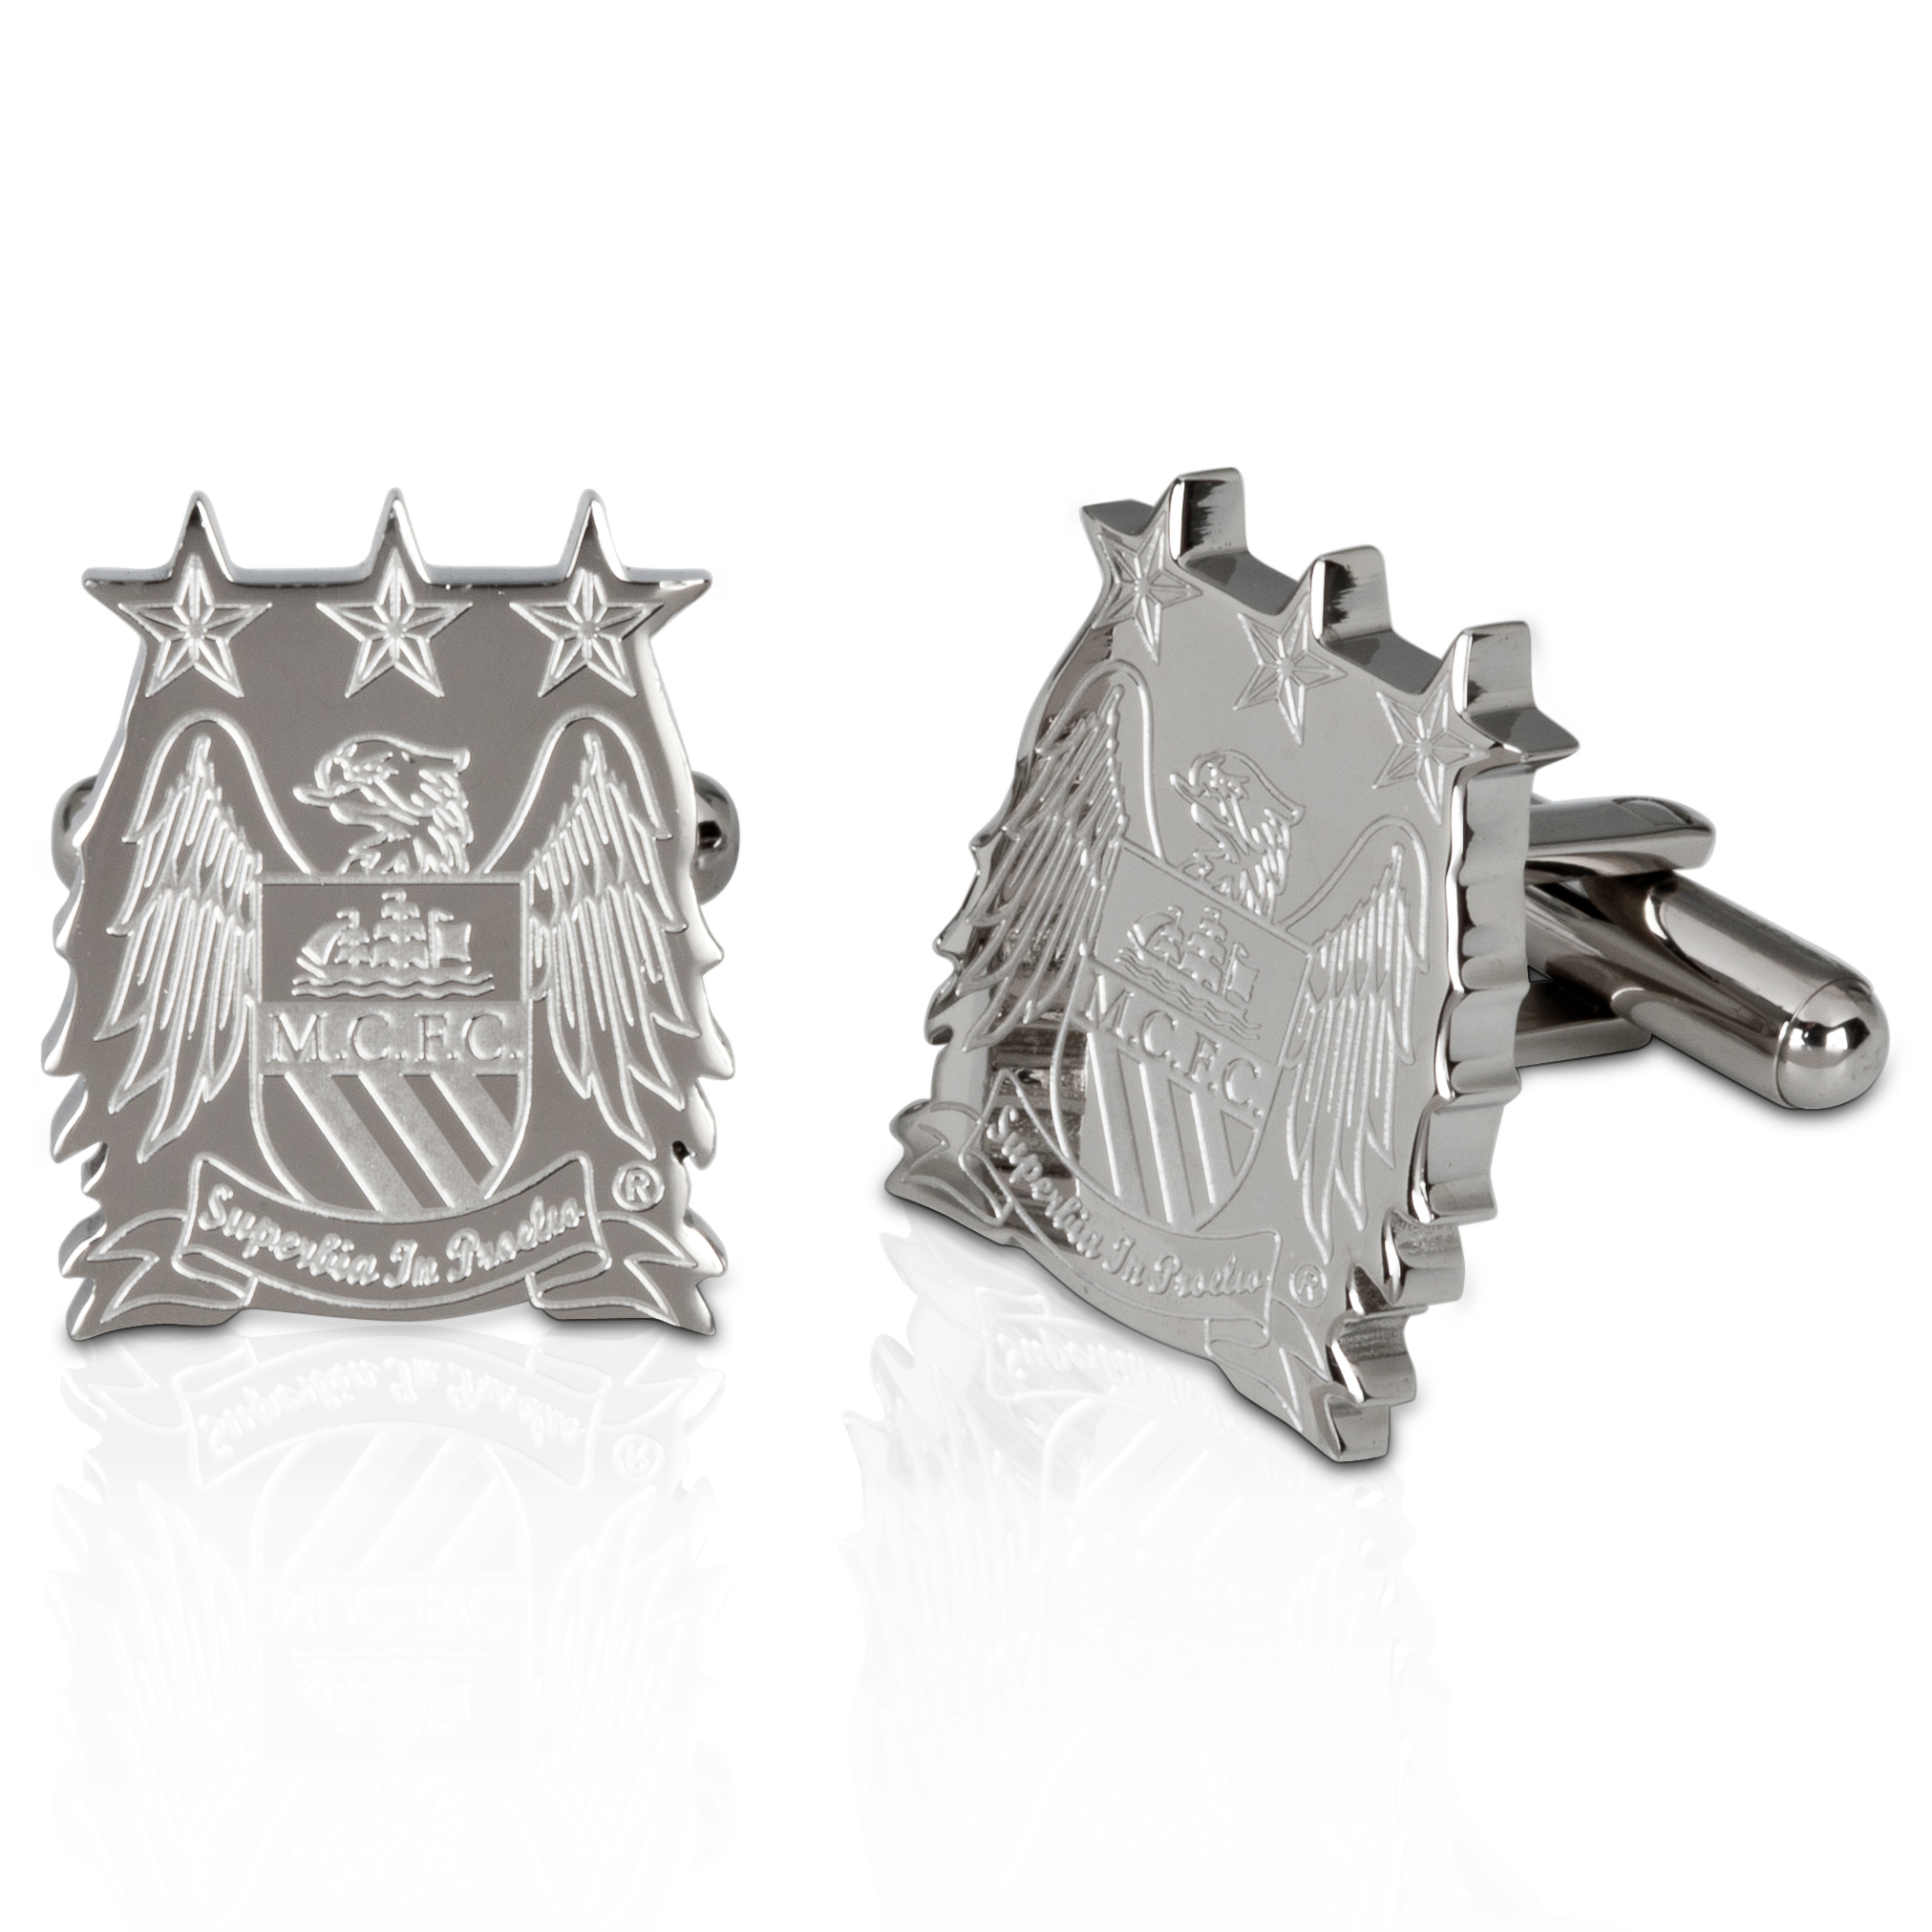 Manchester City Stainless Steel Cut Out Cufflinks